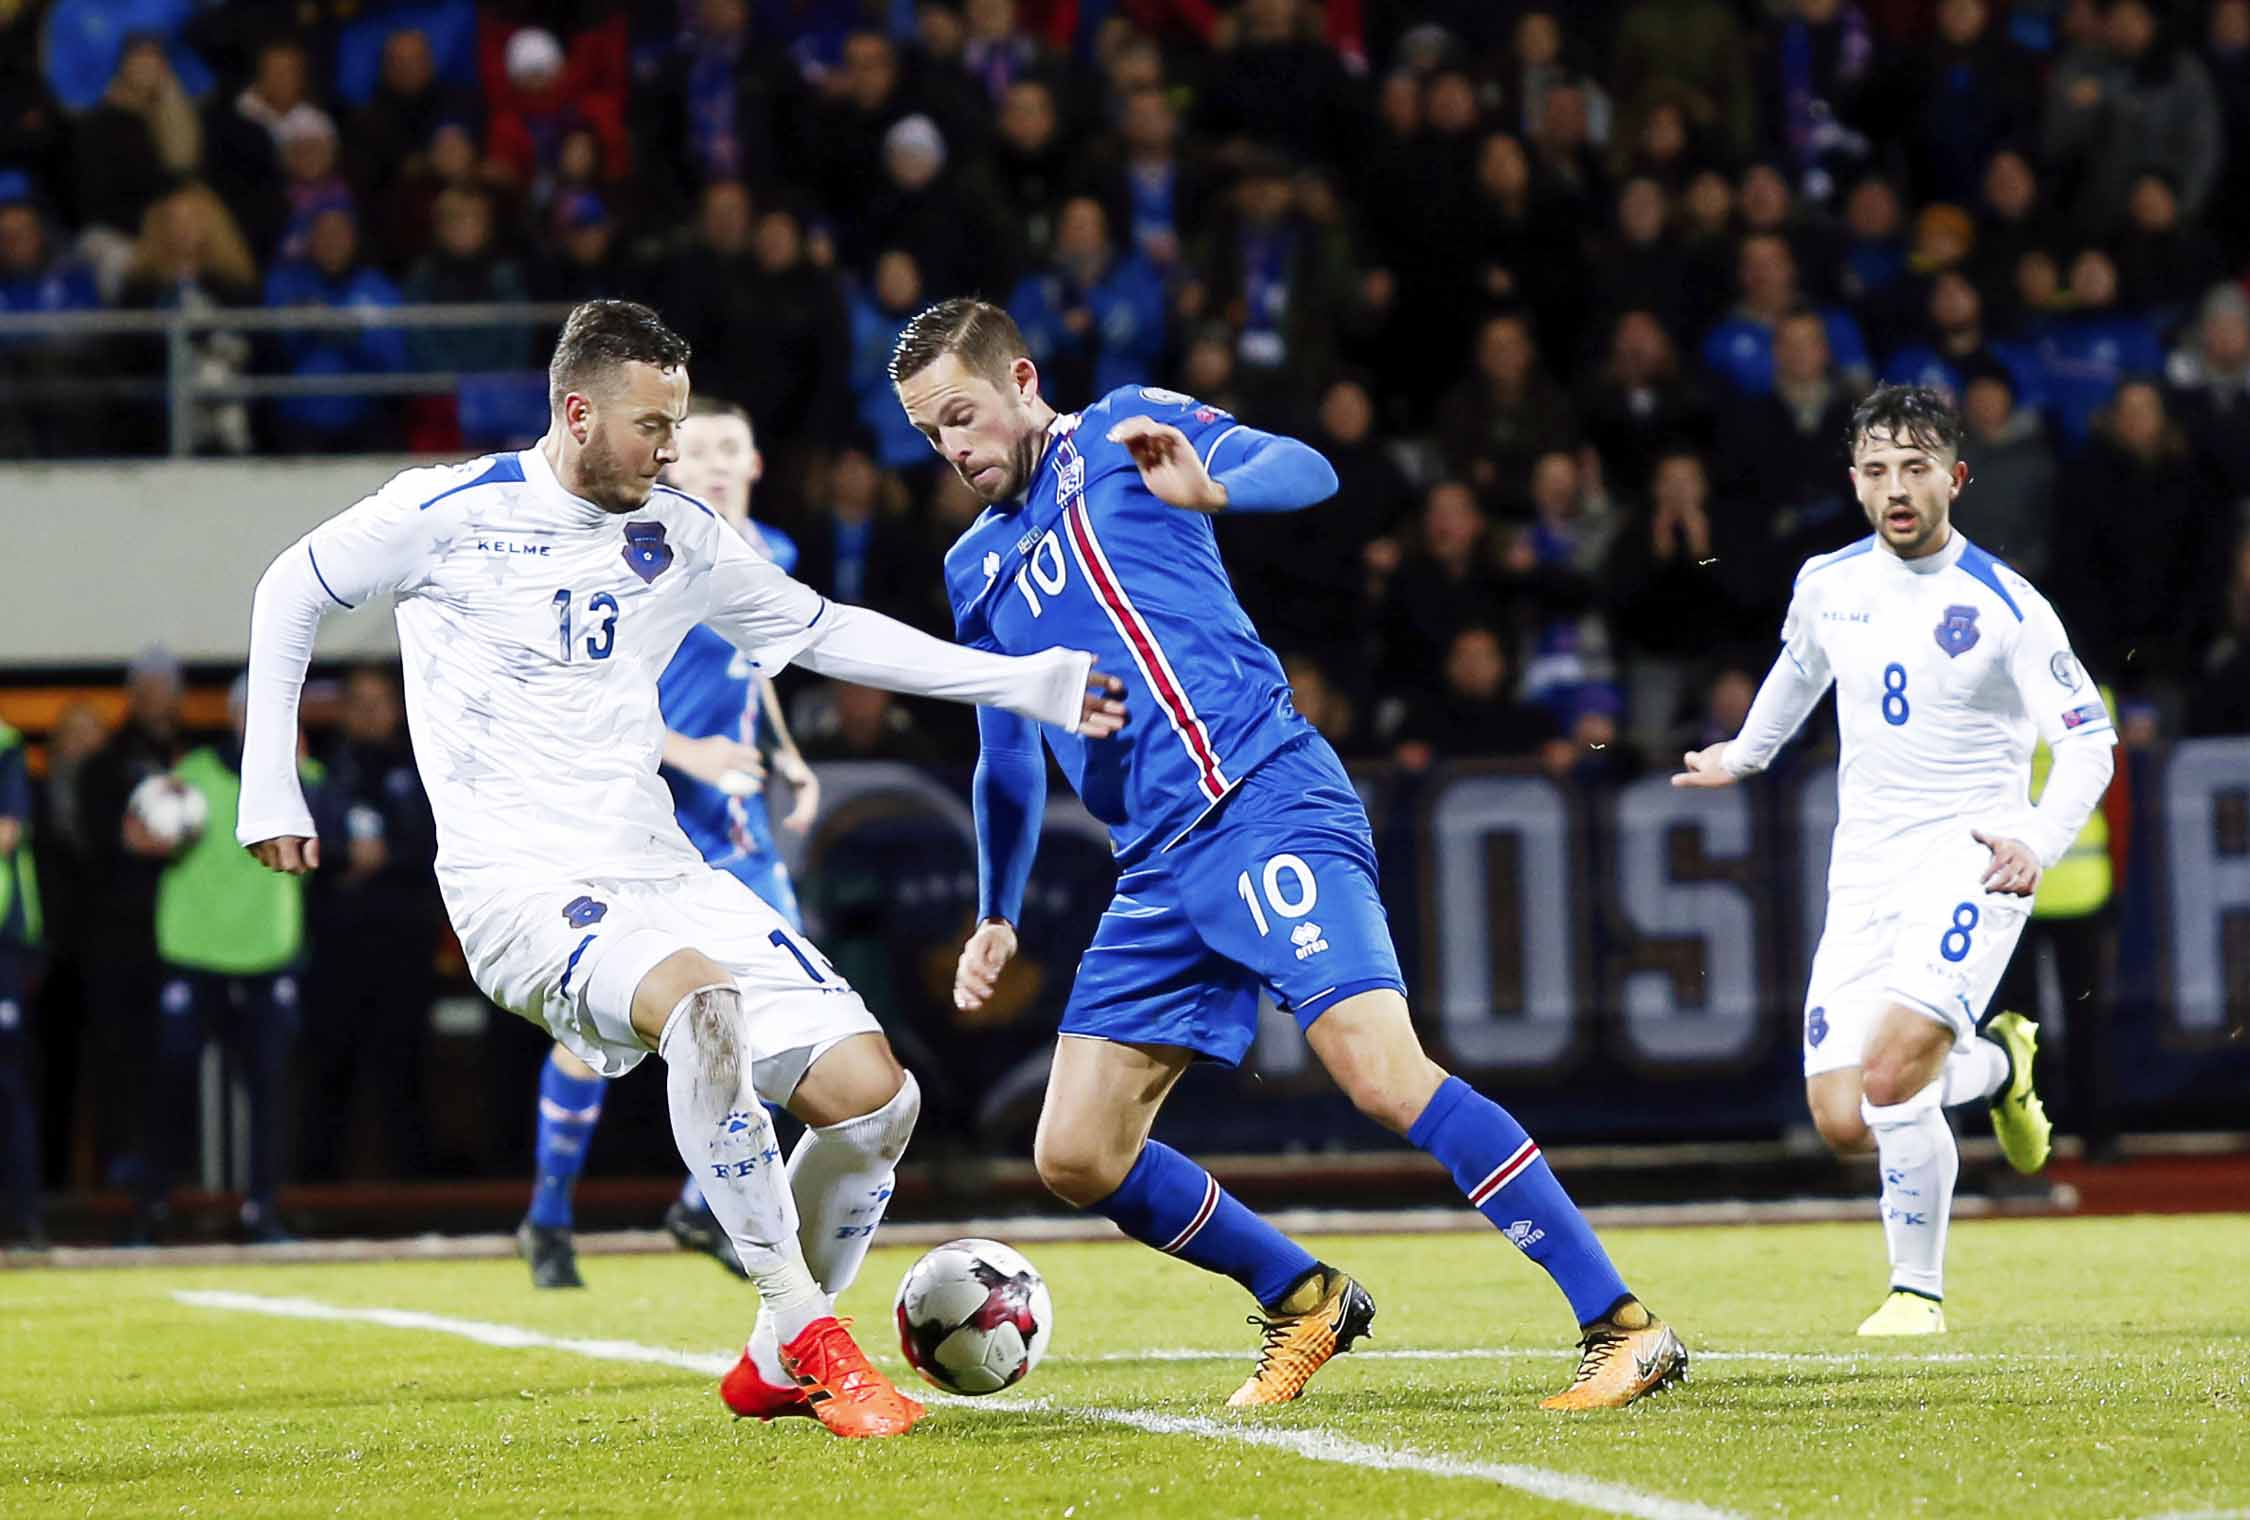 Iceland's Ragnar Ragnusson (right) challenges Kosovo's Dragan Petric for the ball during the World Cup Group I qualifying soccer match between Iceland and Kosovo in Reykjavik, Iceland on Monday.